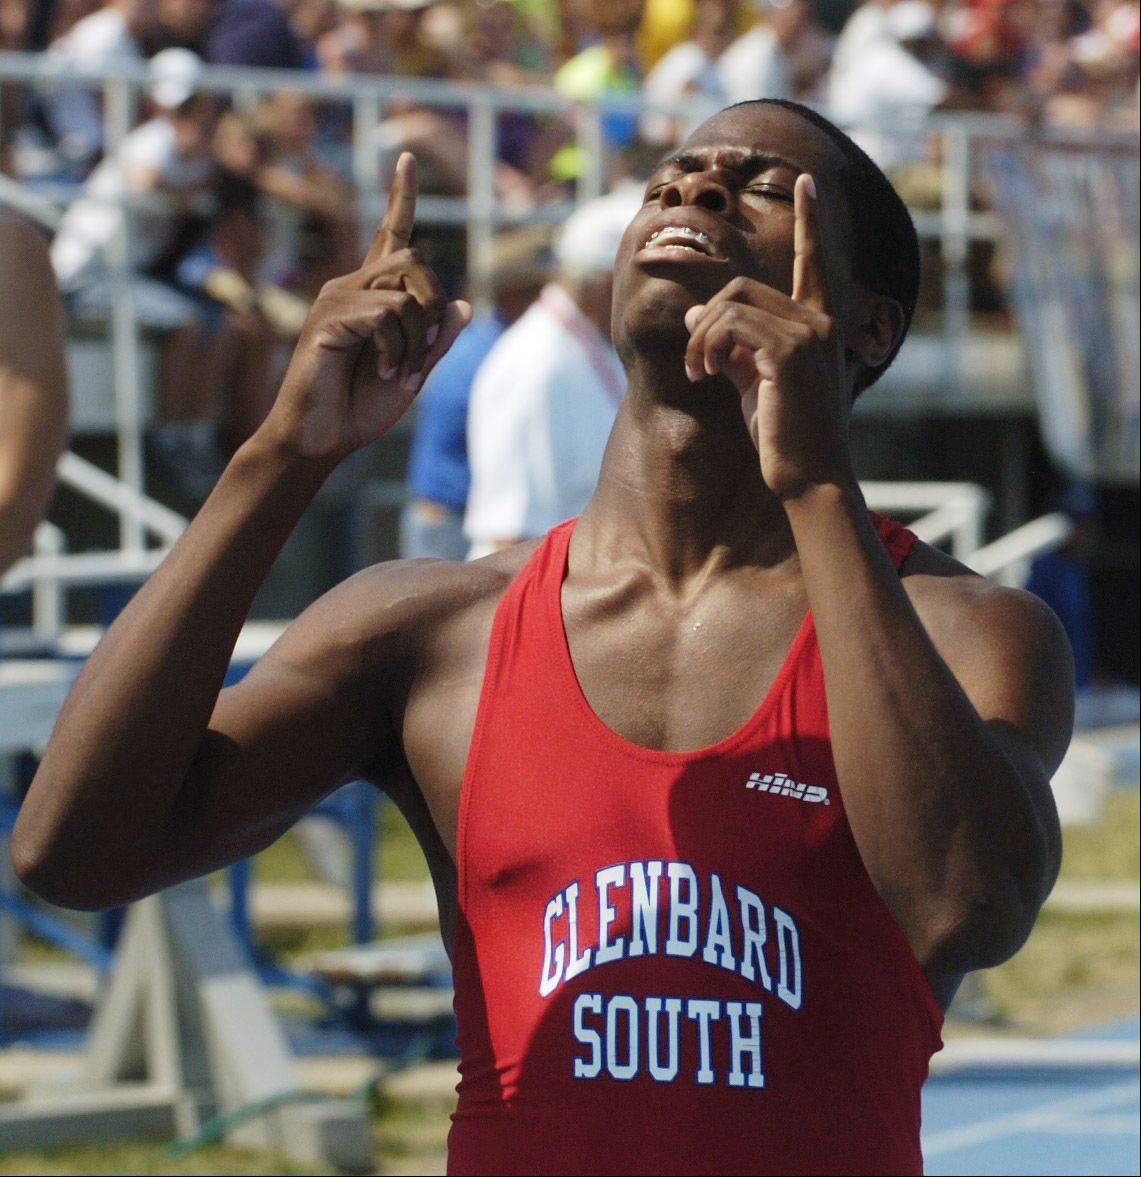 Glenbard South's Elven Walker reacts to his finish in the class 2A 300-meter intermediate hurdles during the IHSA boys state track finals in Charleston Saturday.